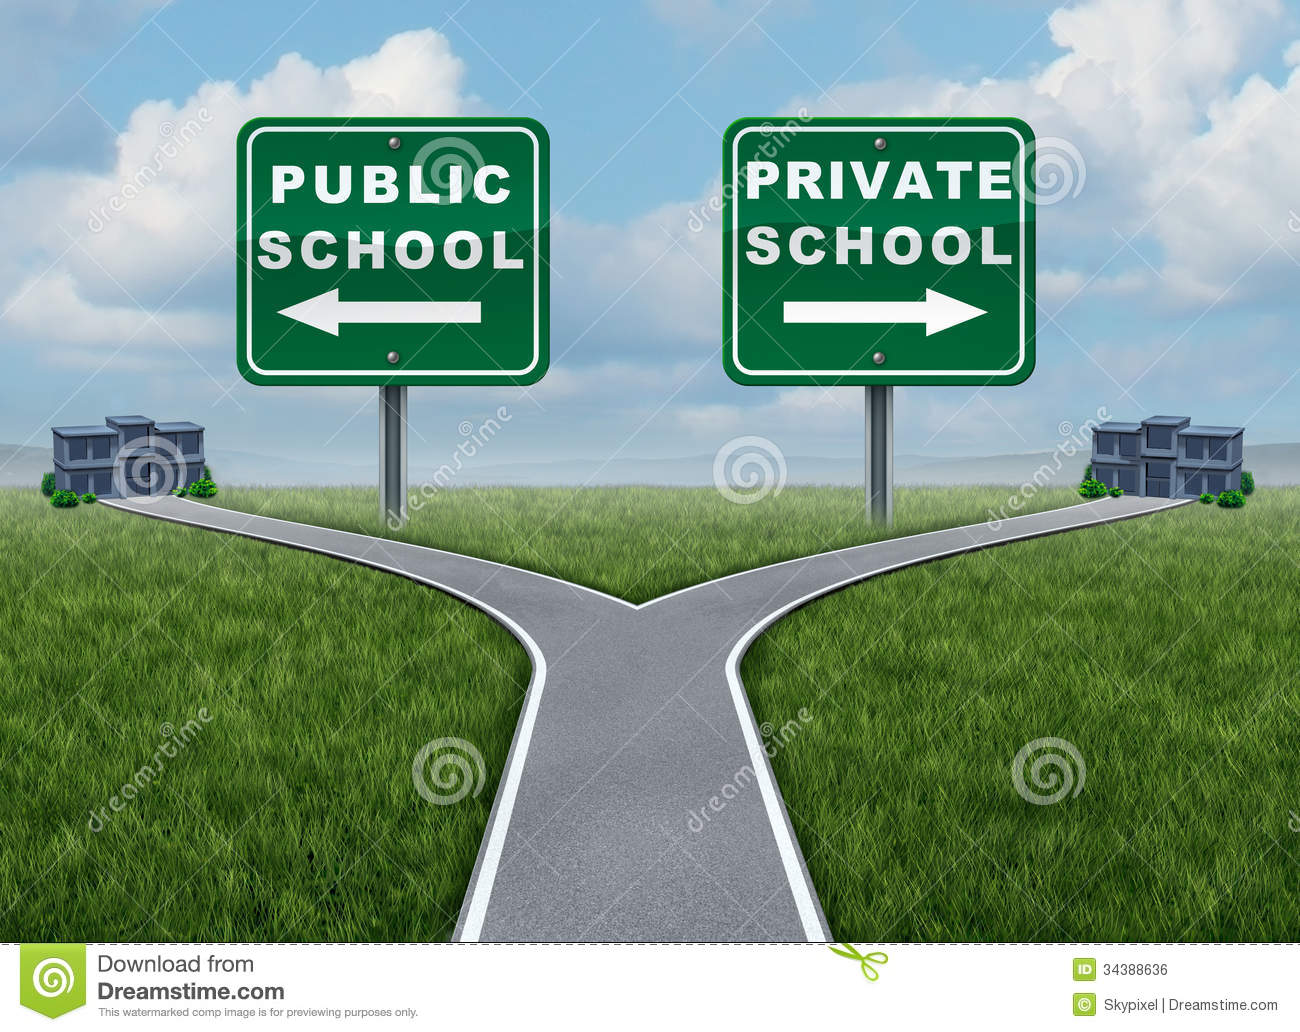 Public And Private School Choice Royalty Free Stock Image - Image ...